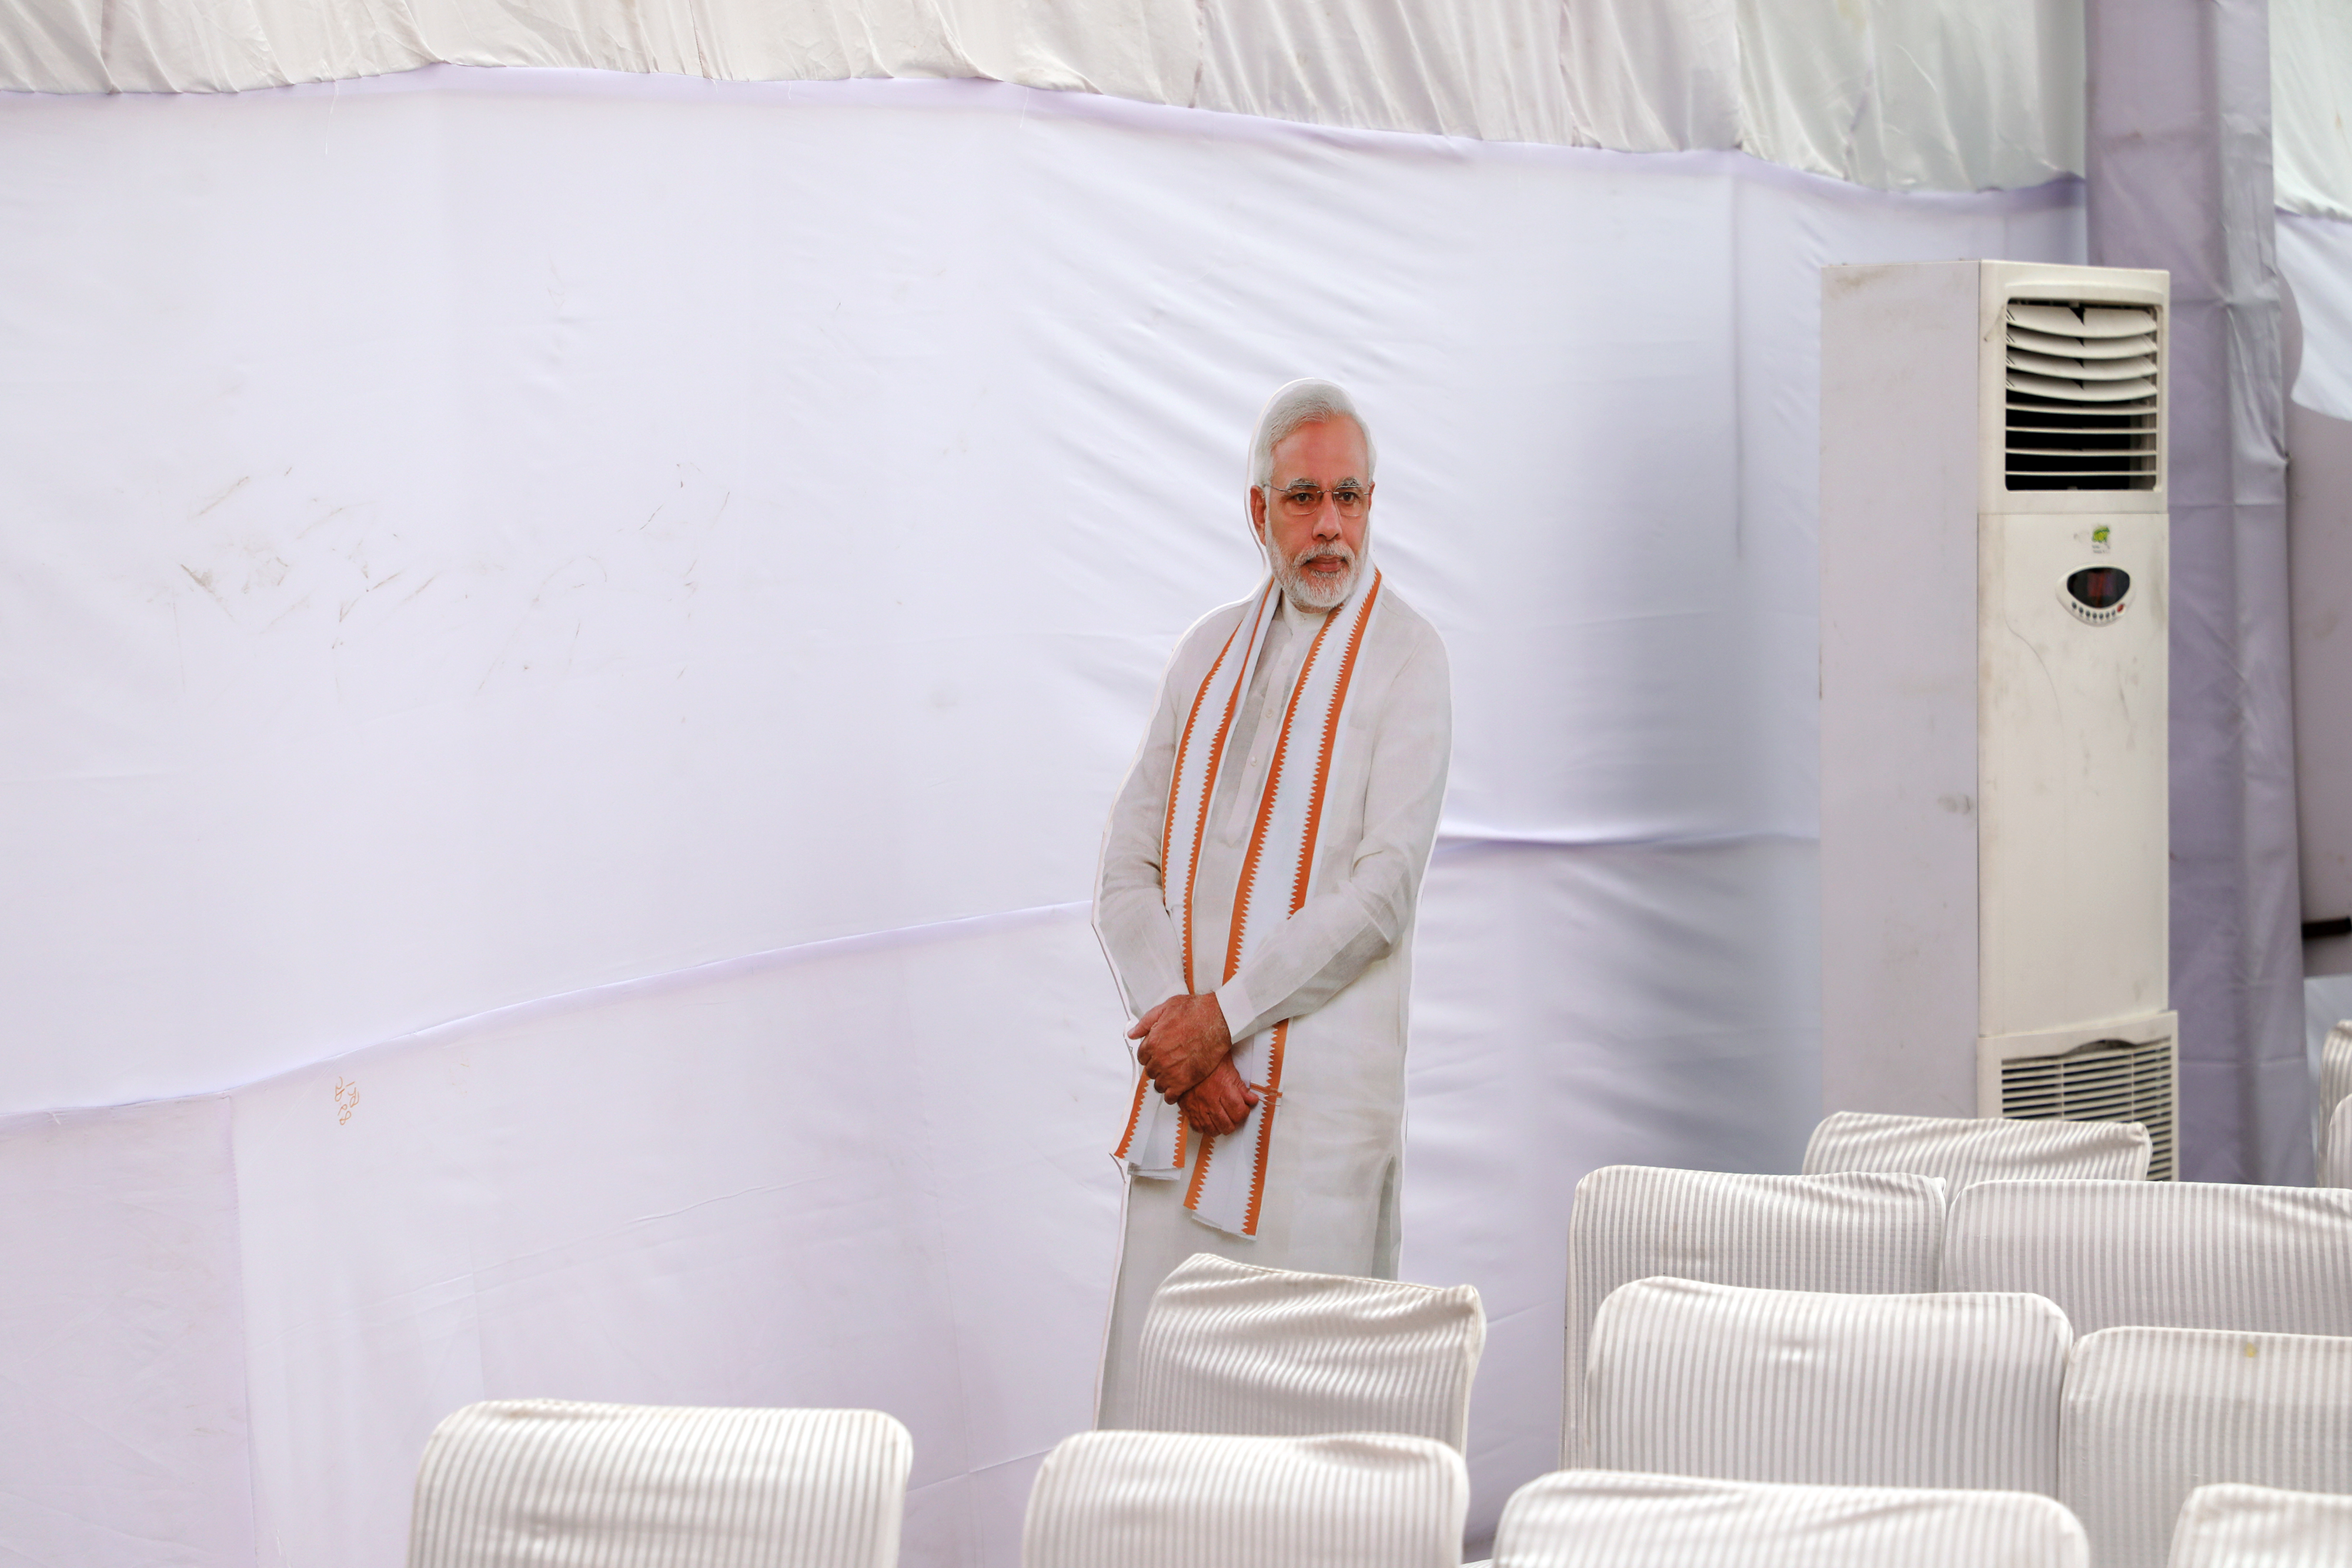 India election 2019: Narendra Modi pushes fear over hope - The